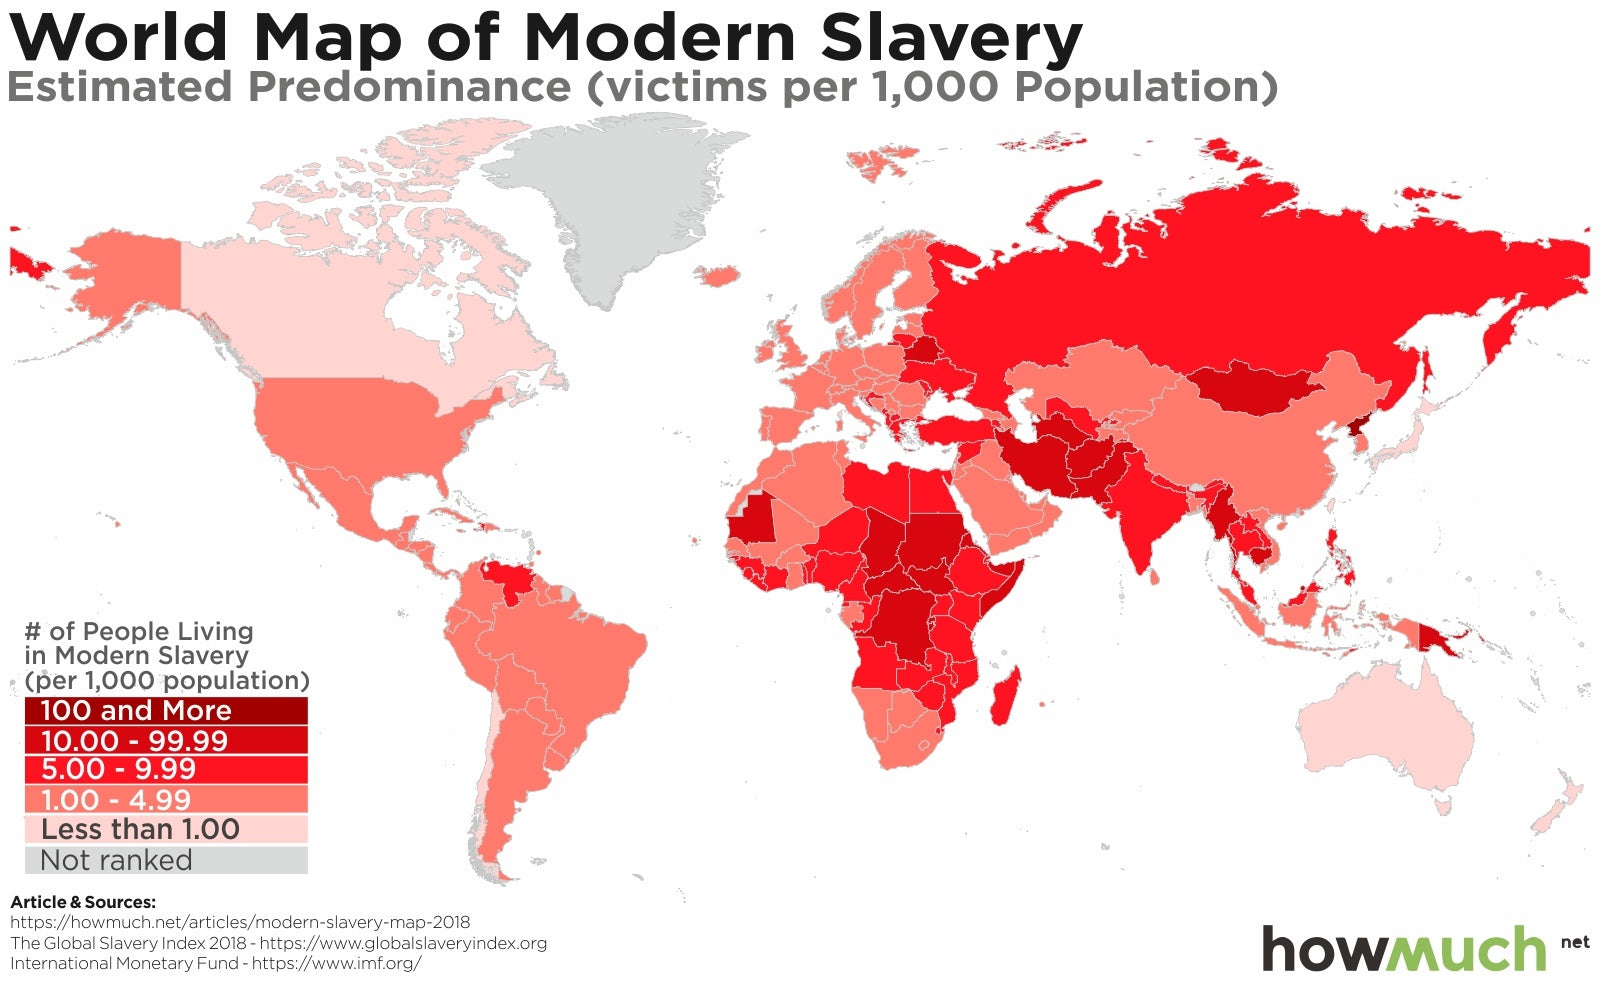 The extent of modern slavery around the world